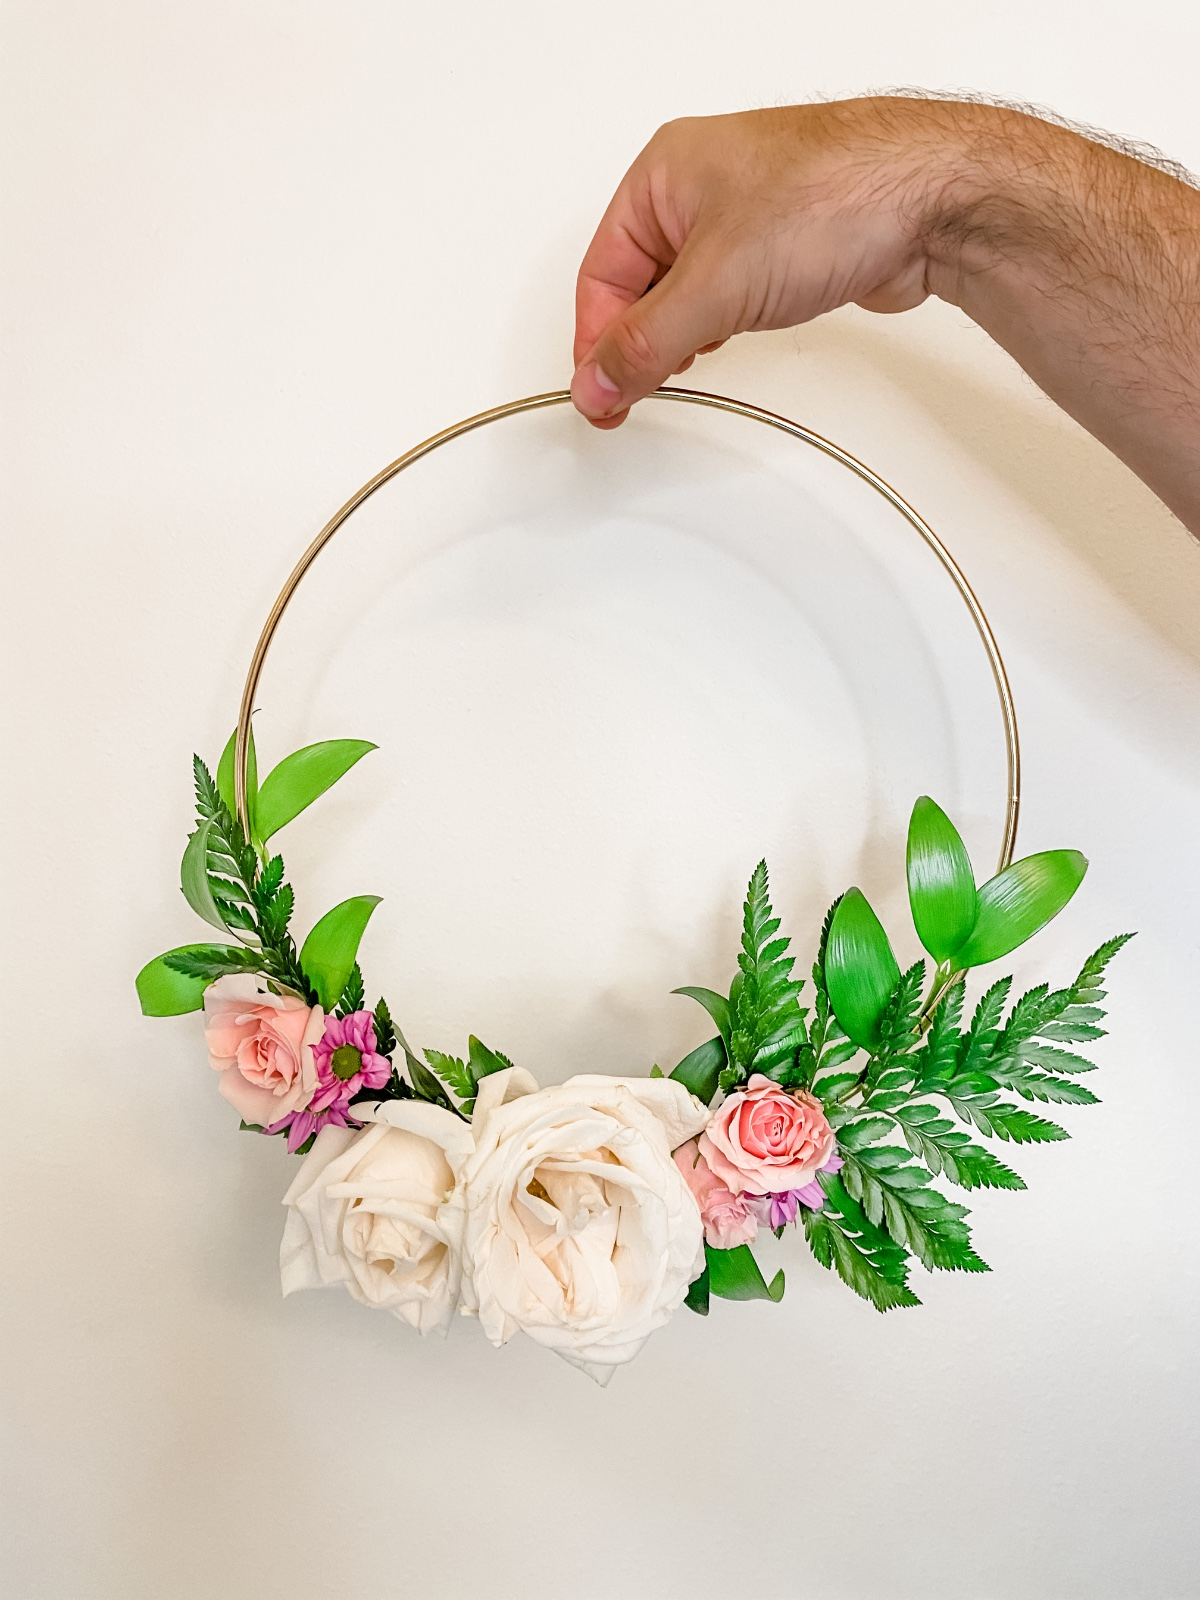 How to Make a Romantic Ring Bouquet